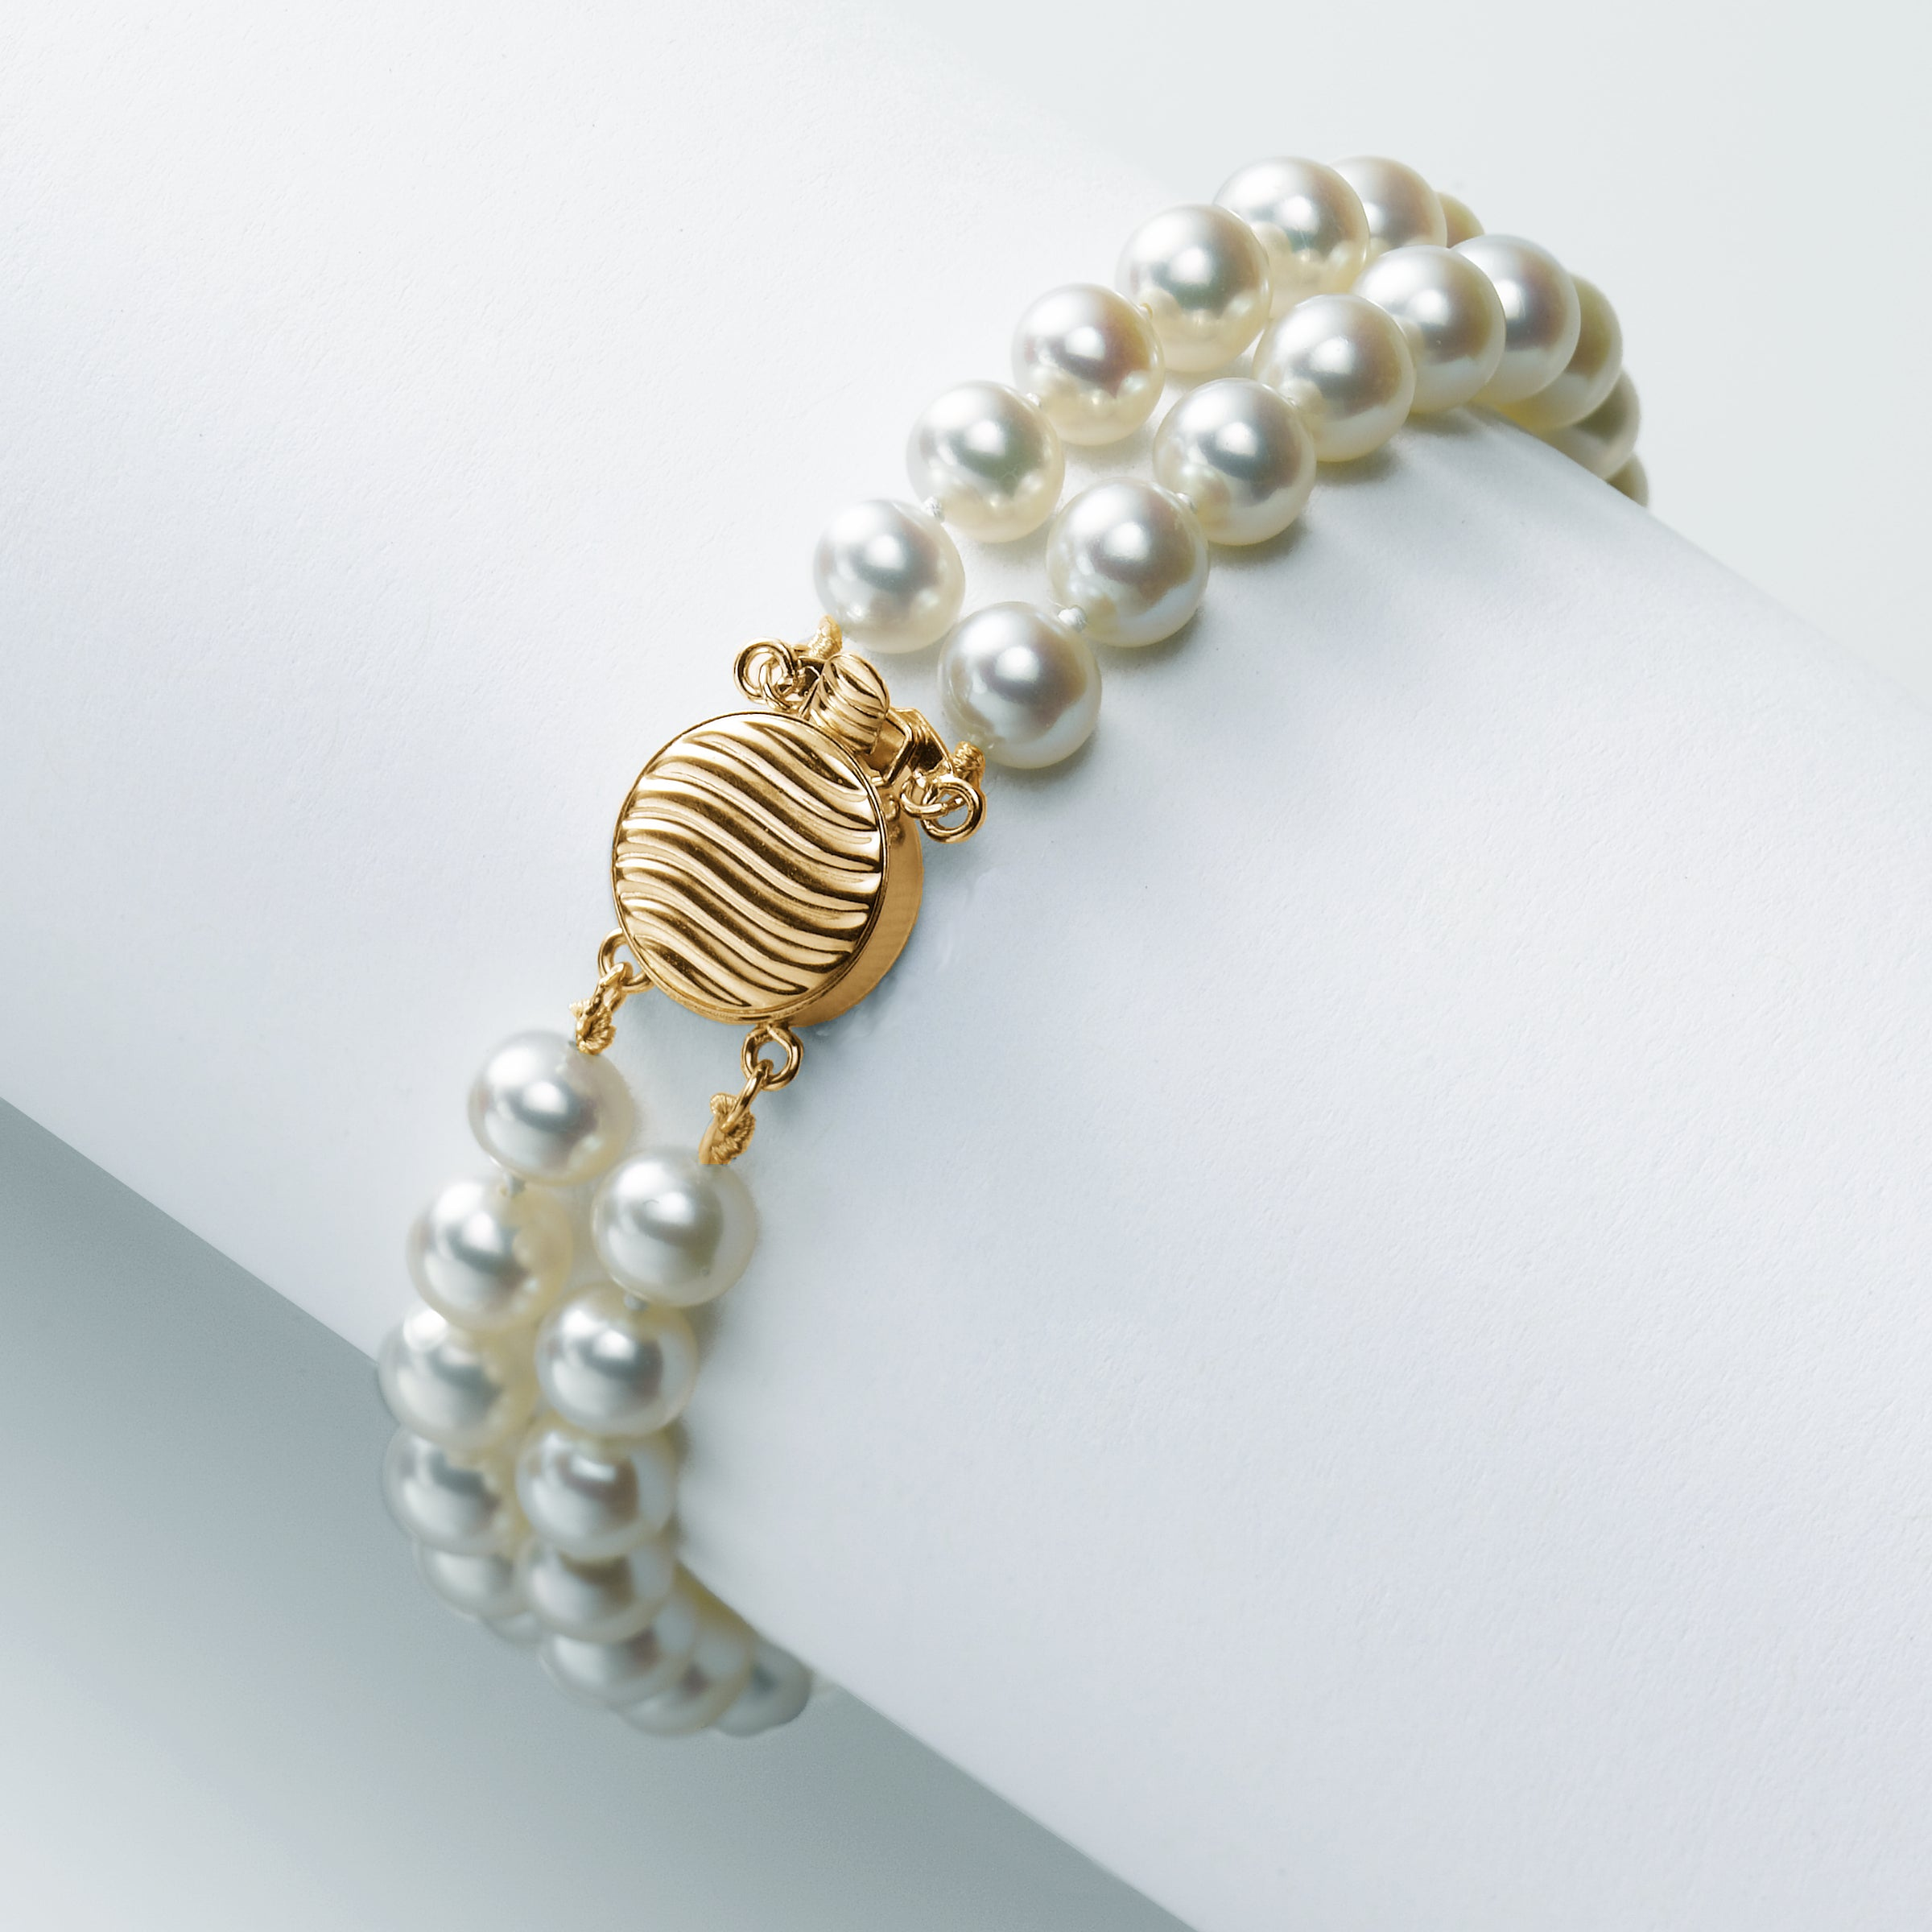 2 Strand 6MM Freshwater Cultured Pearl Bracelet, 14K Yellow Gold